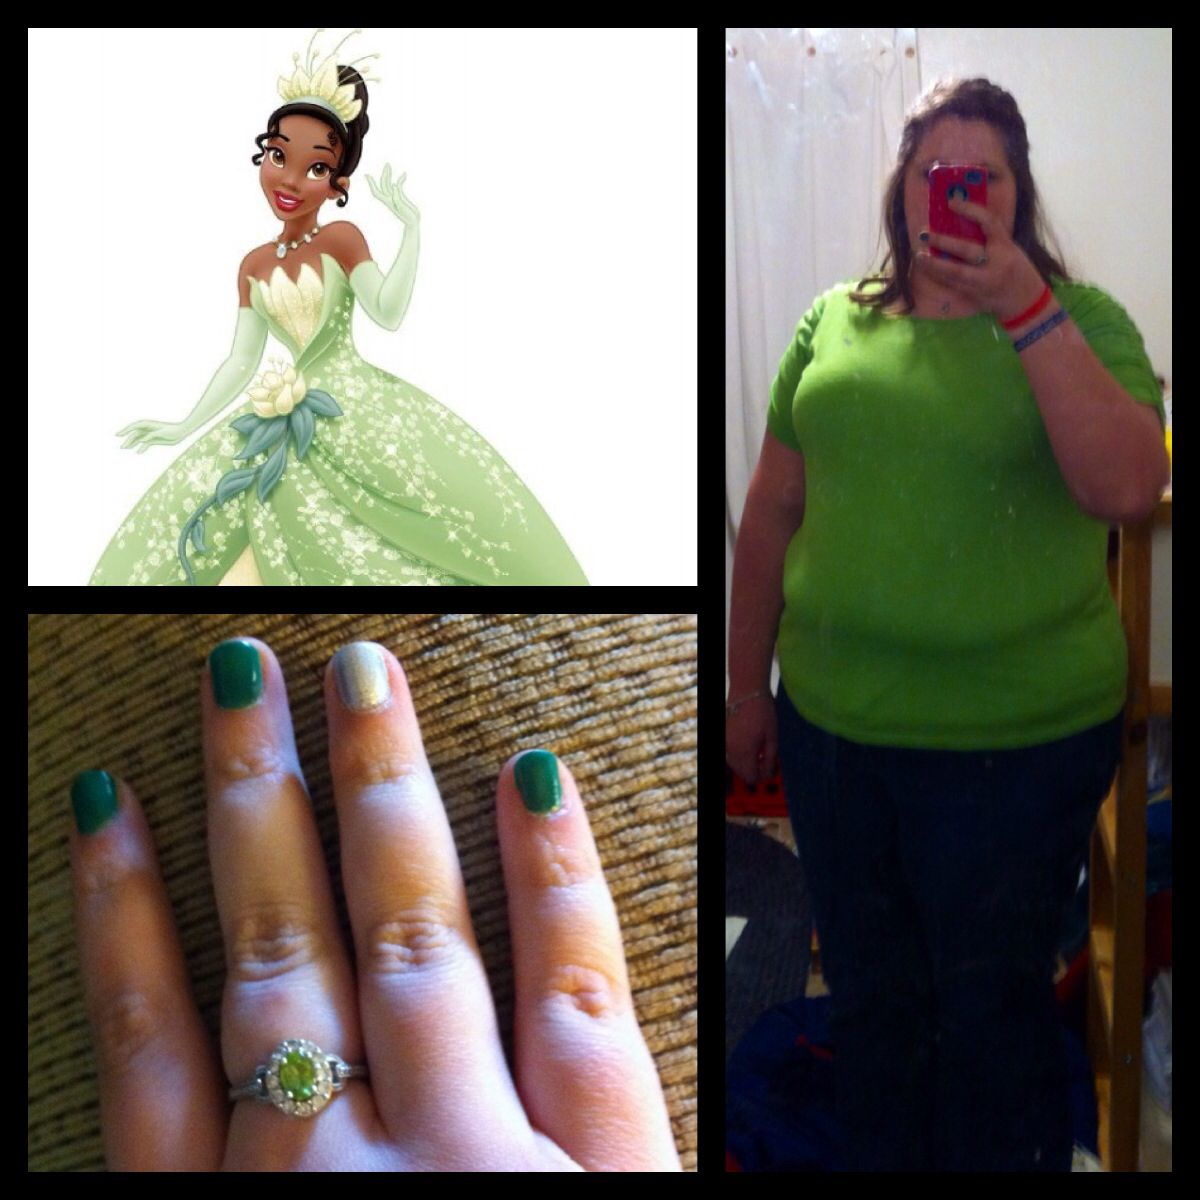 Princess look alike: Day 2: Princess Tiana- Today I was Tiana from princess and the frog, I wore a light green shirt that is a similar color to her gown, and I added a little bot of sparkle with some lime green matching necklace and ring I had. I decided on a casual half up-do with loose curls. I also went with a classic green mani with a silver accent finger. Tiana is a reminder that with hard work you can achieve goals but never forget to make time for love!-JB